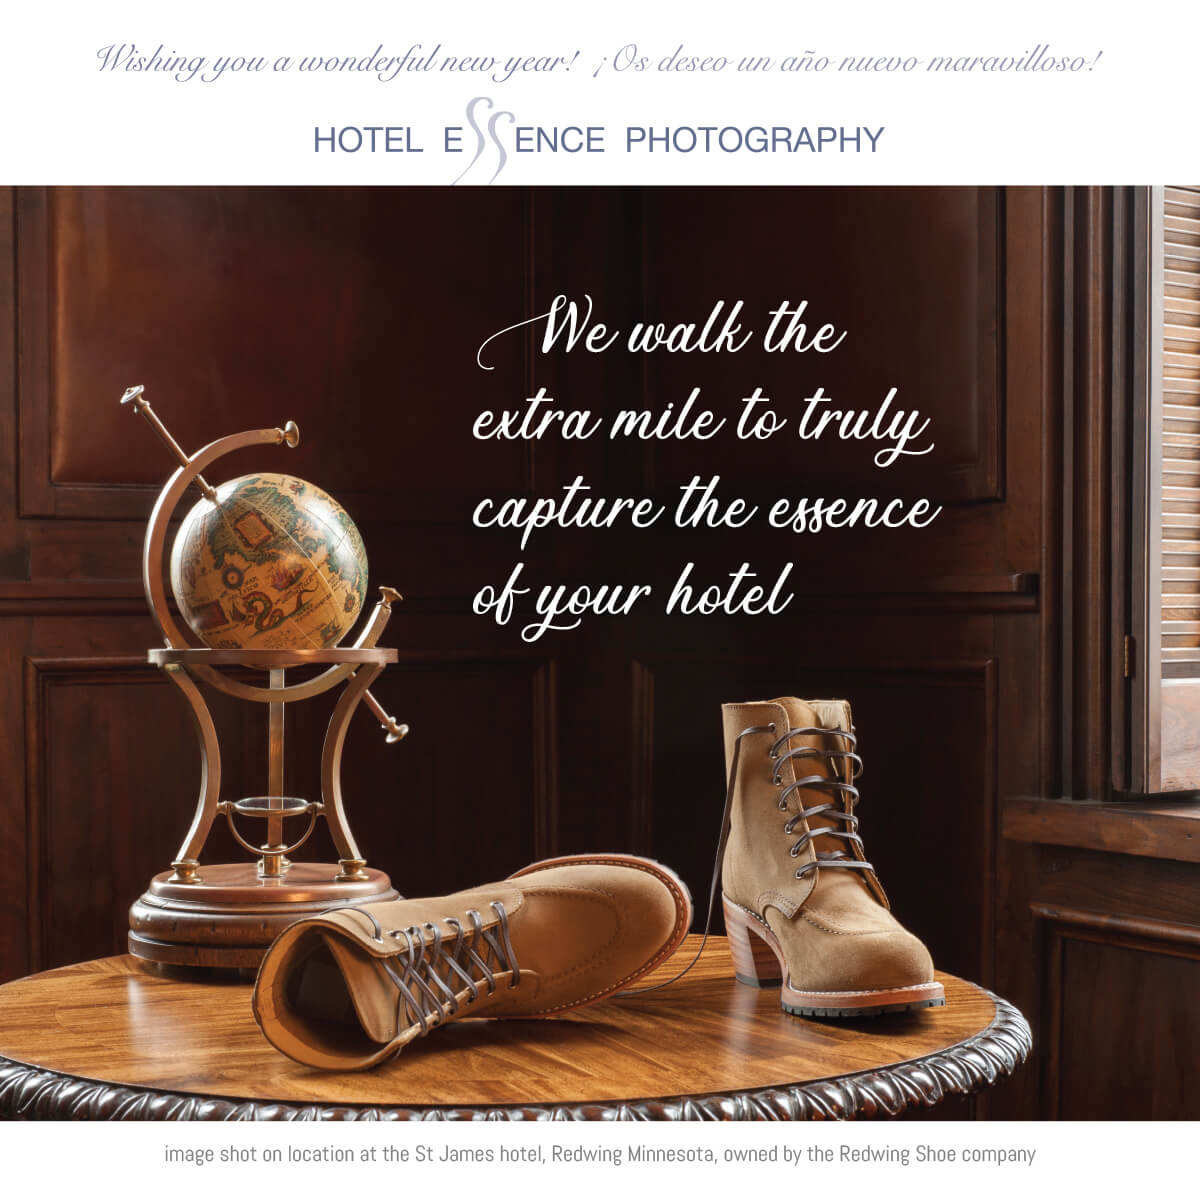 We will go the extra mile to capture the very essence of your hotel